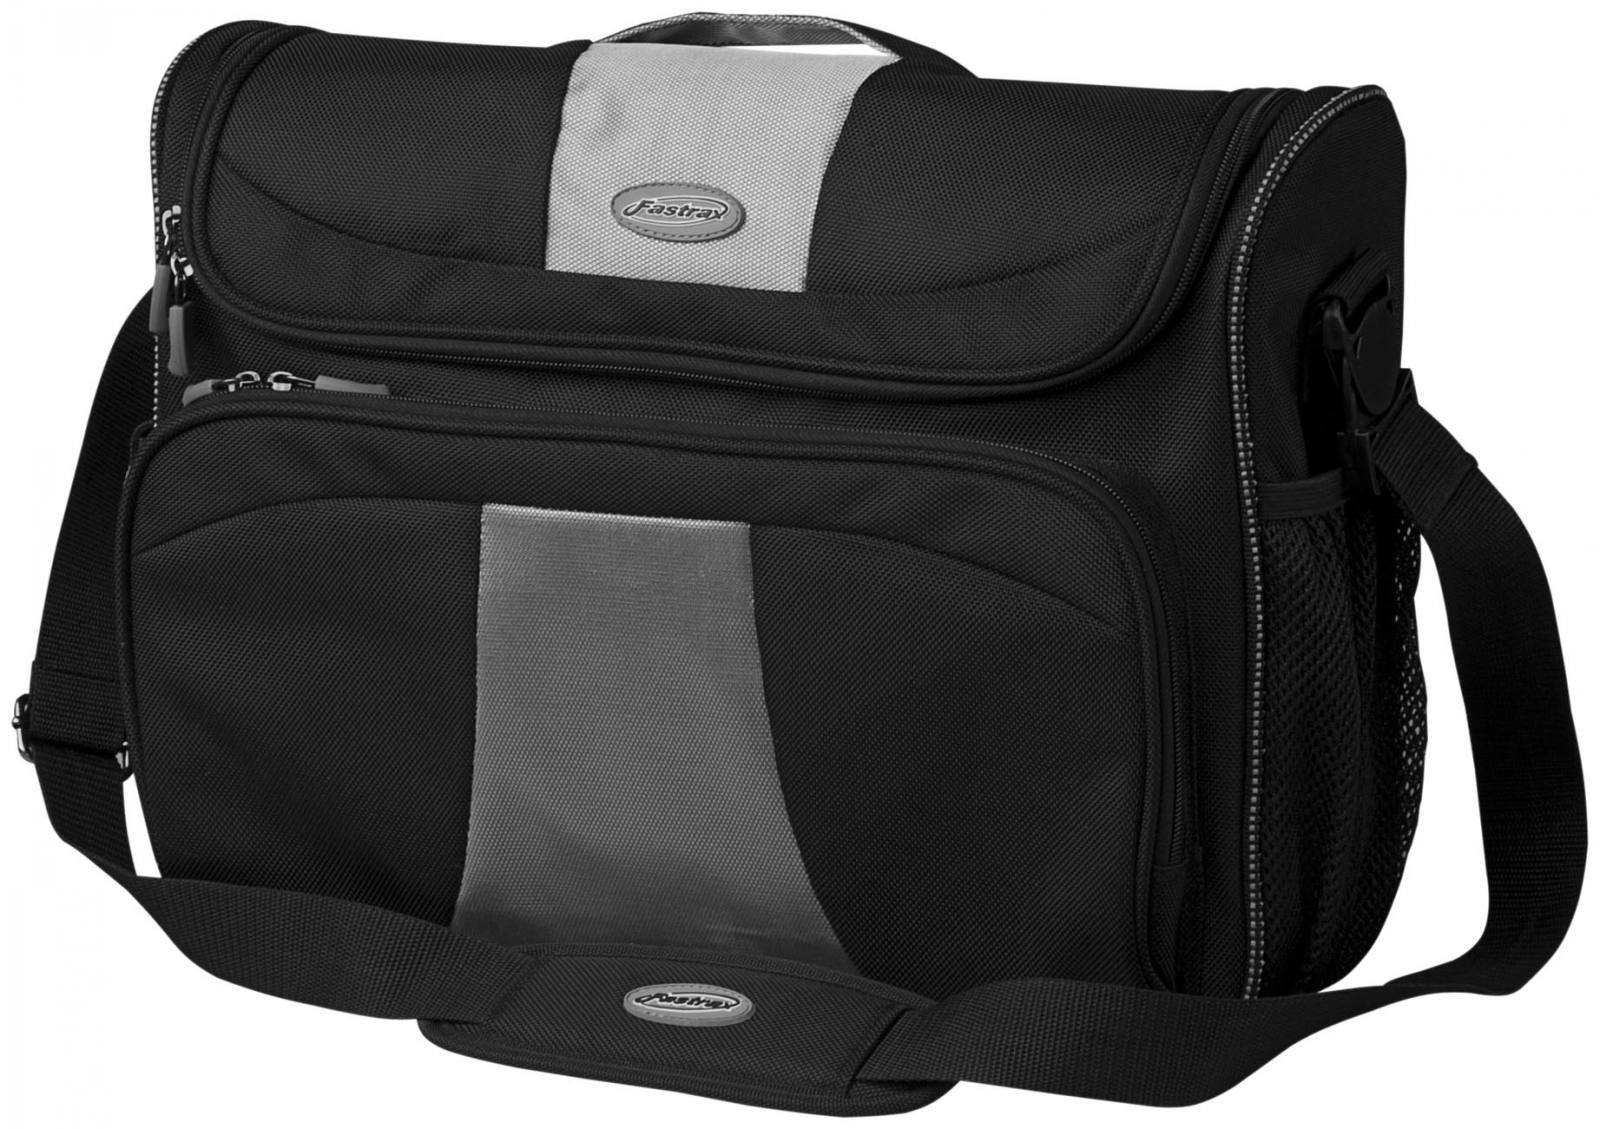 messenger bag for sale in anchorage, ak | anchorage suzuki arctic